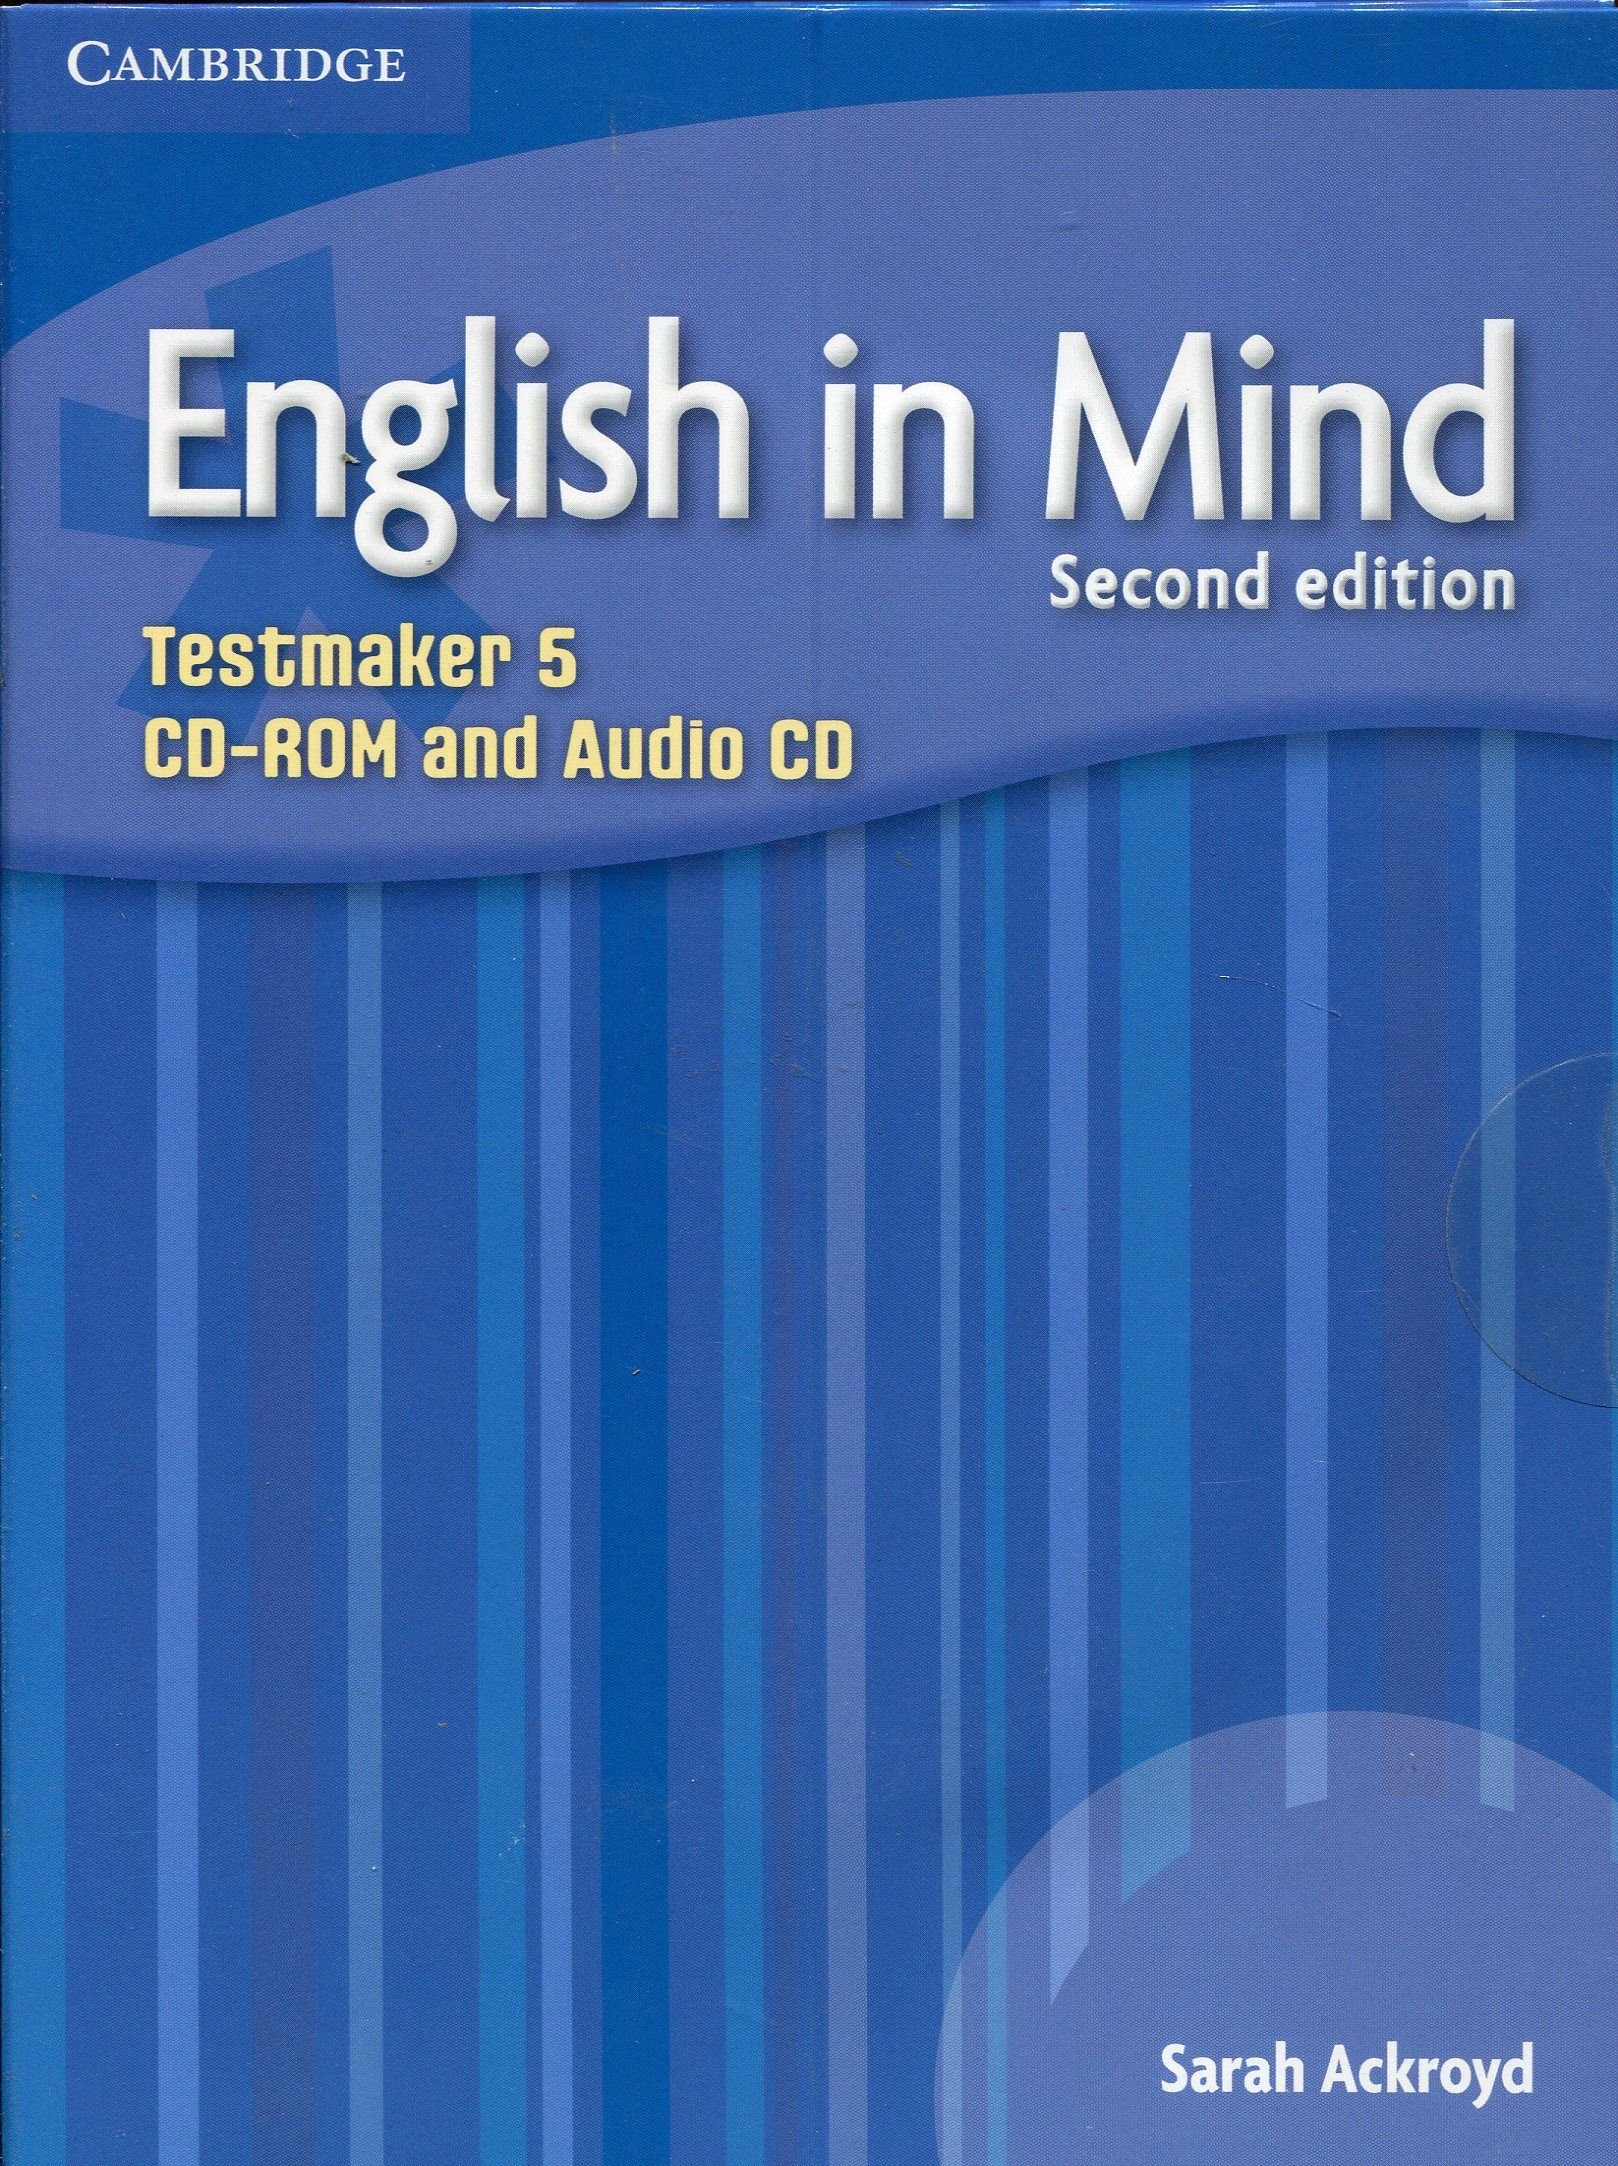 English in Mind Level 5 Testmaker CD-ROM and Audio CD